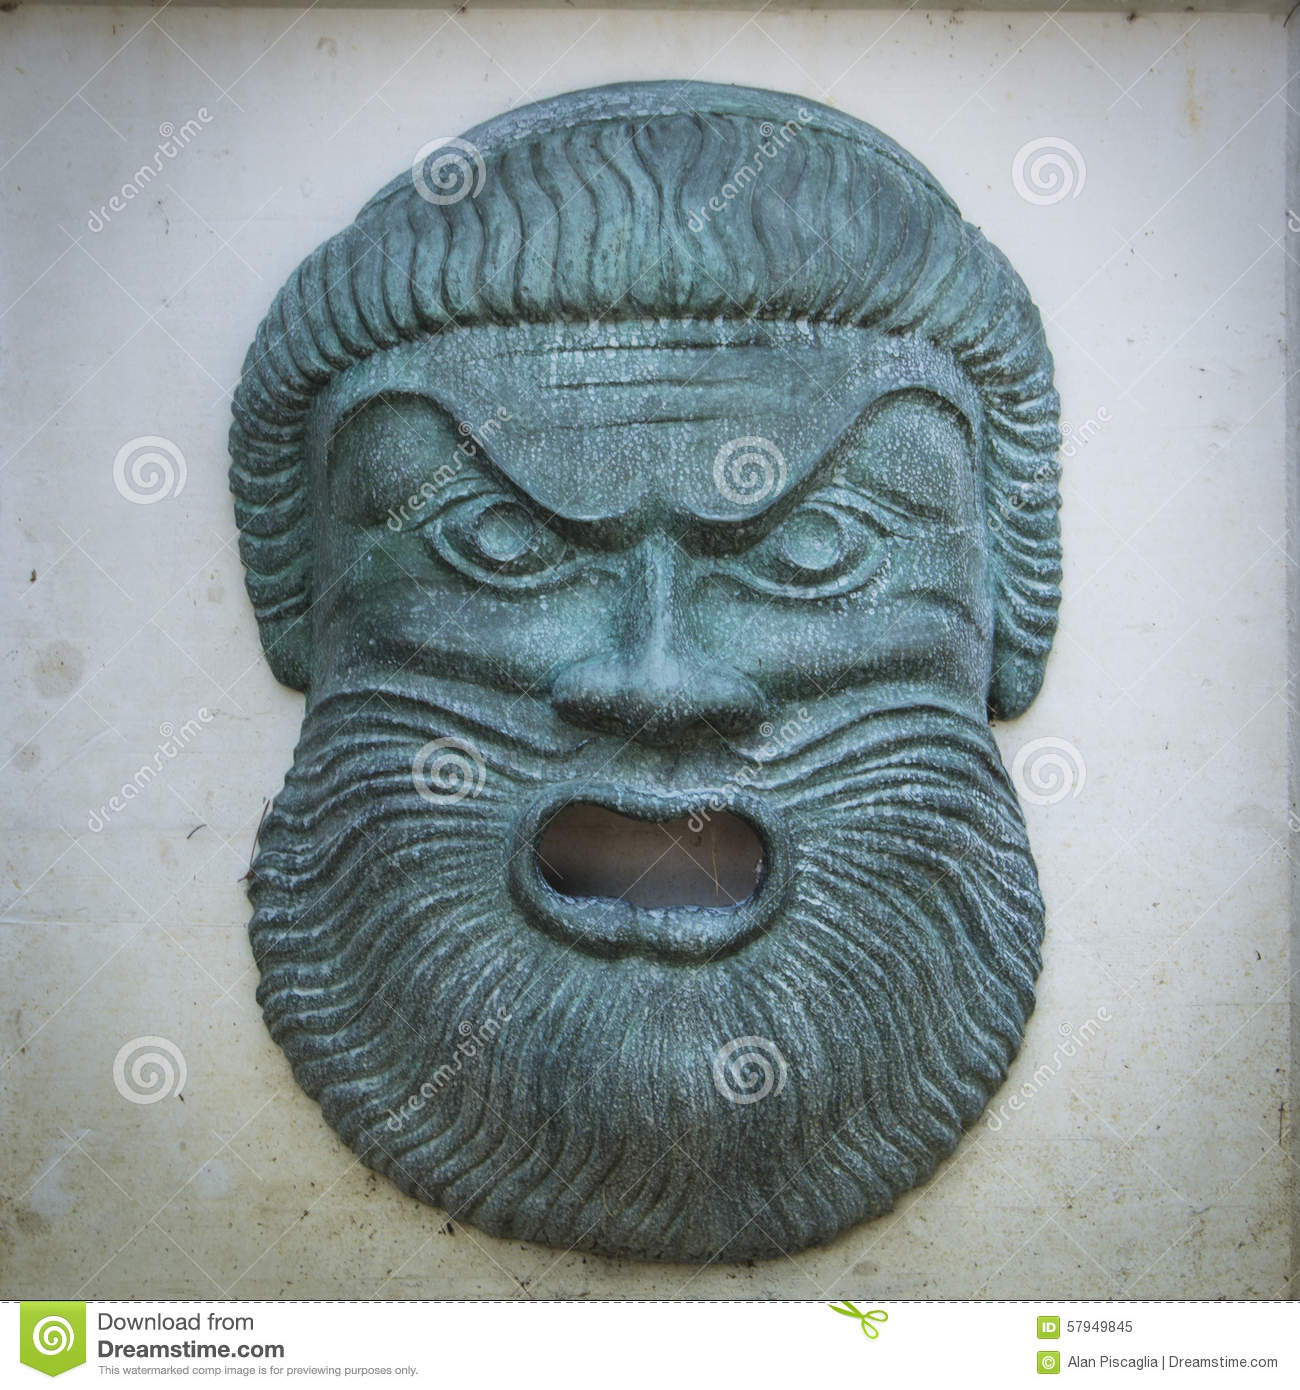 Angry Zeus Statue Face Stock Photo - Image: 57949845